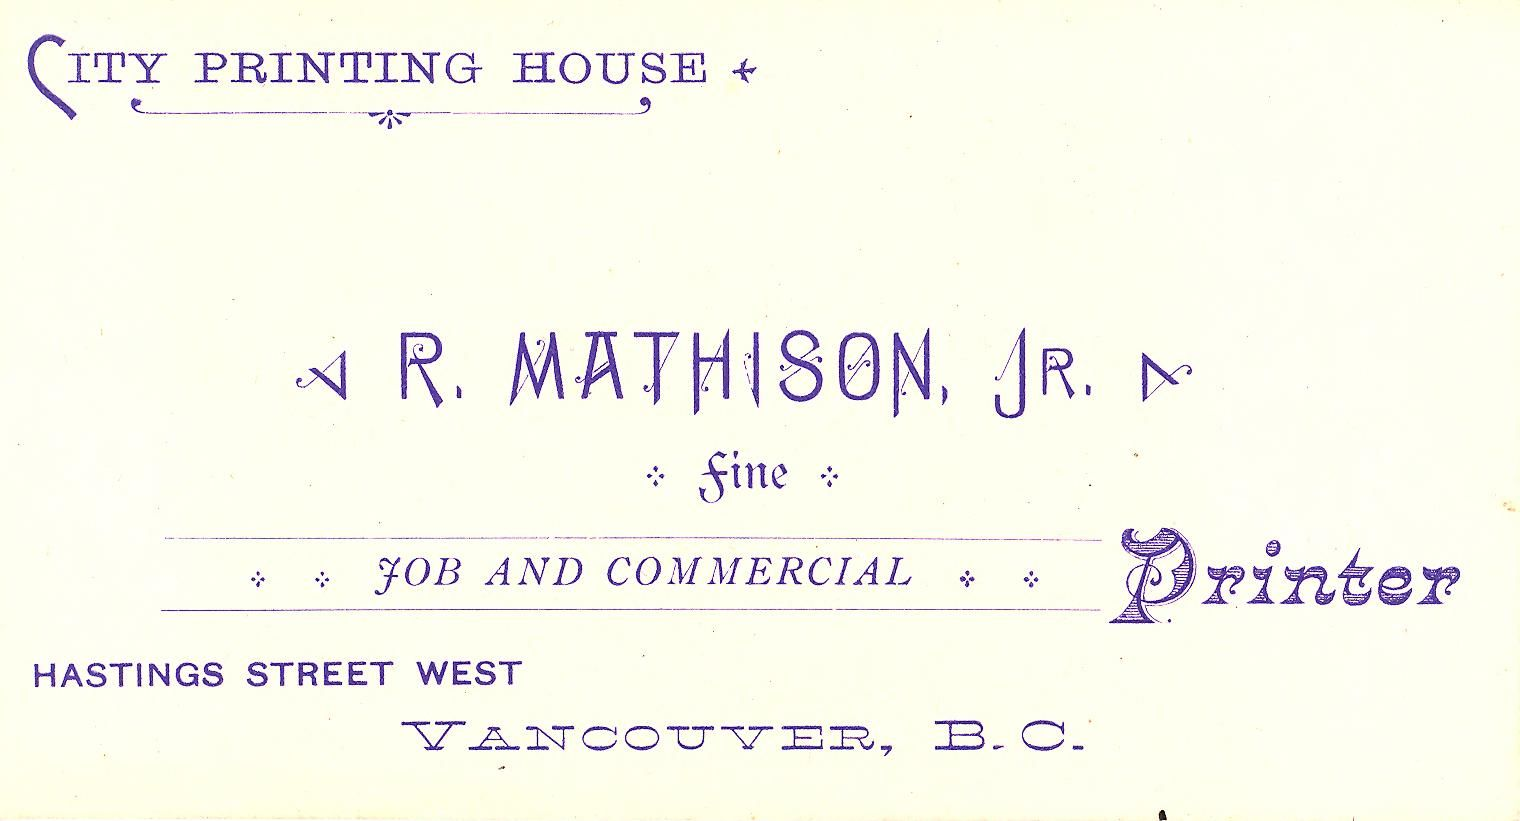 Business card for city printing house r mathison jr robert business card for city printing house r mathison jr robert mathison printer vancouver 1887 reheart Gallery